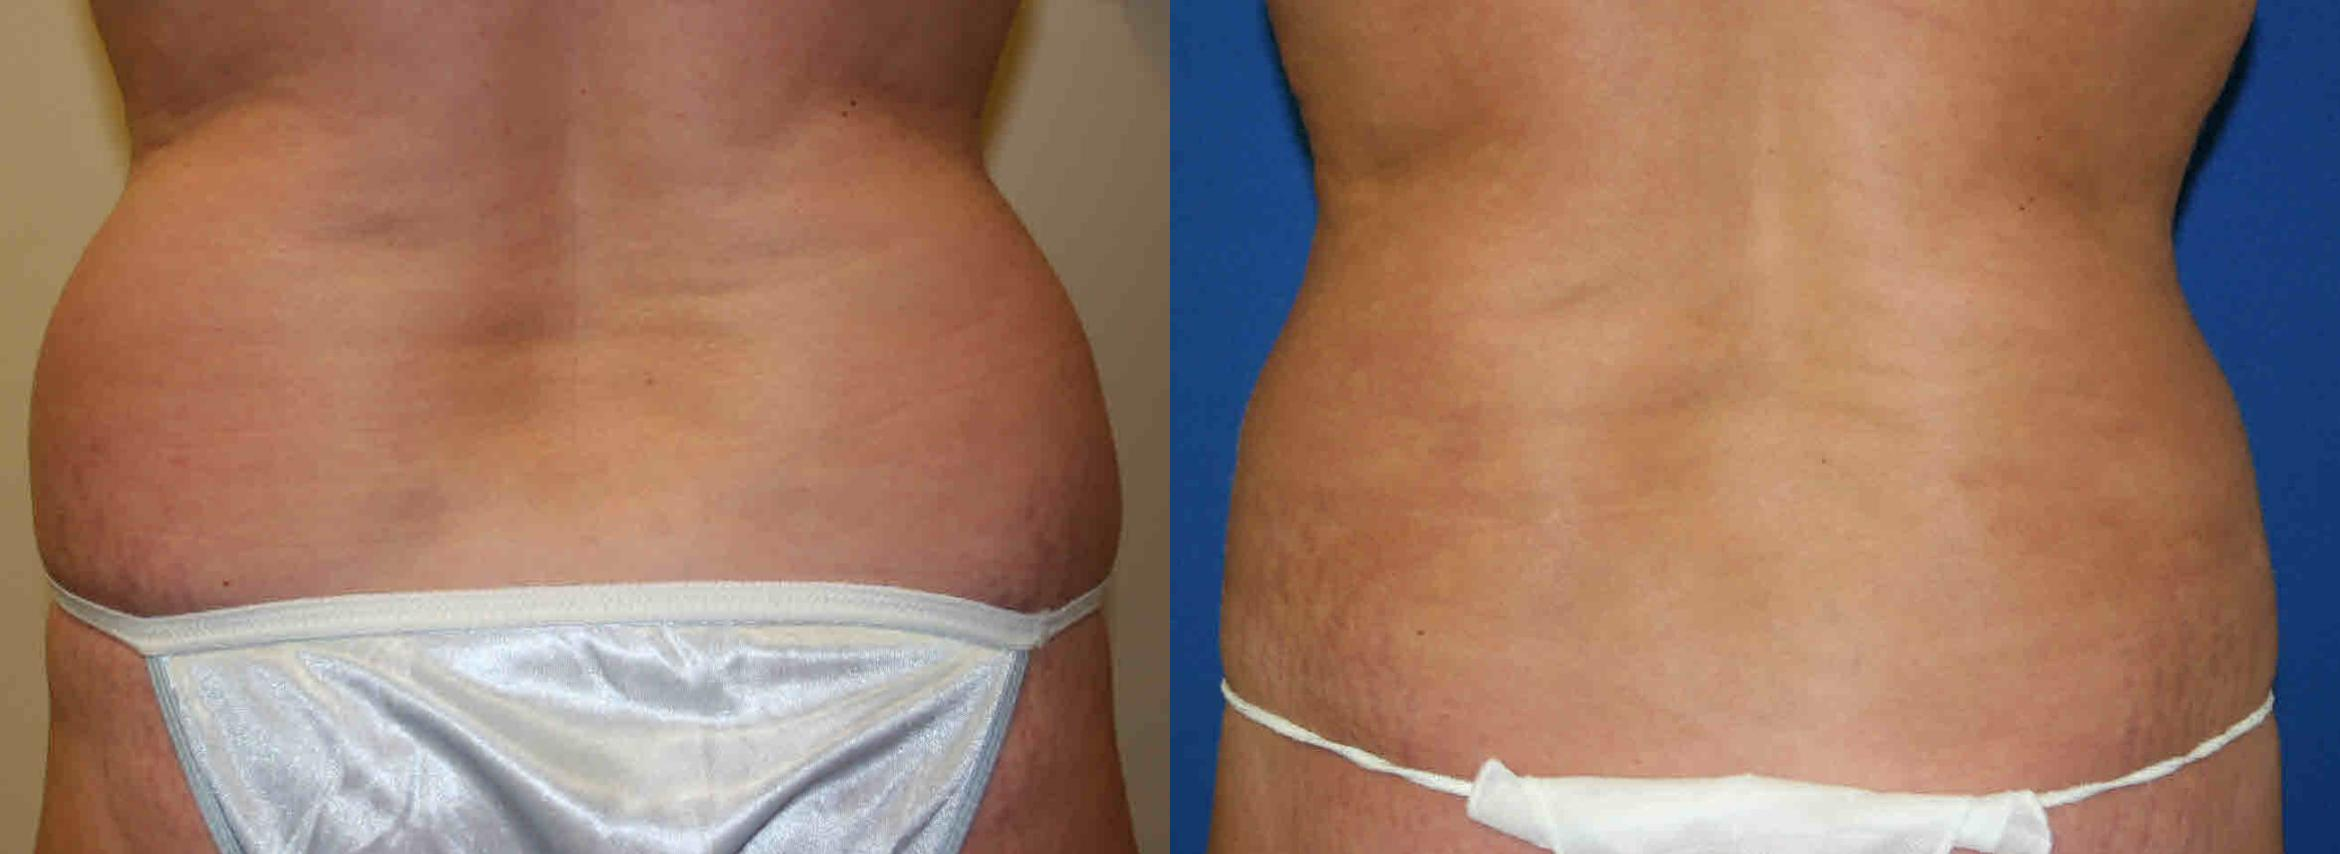 Liposuction Case 23 Before & After View #1 | Palo Alto, CA | Daryl K. Hoffman, MD